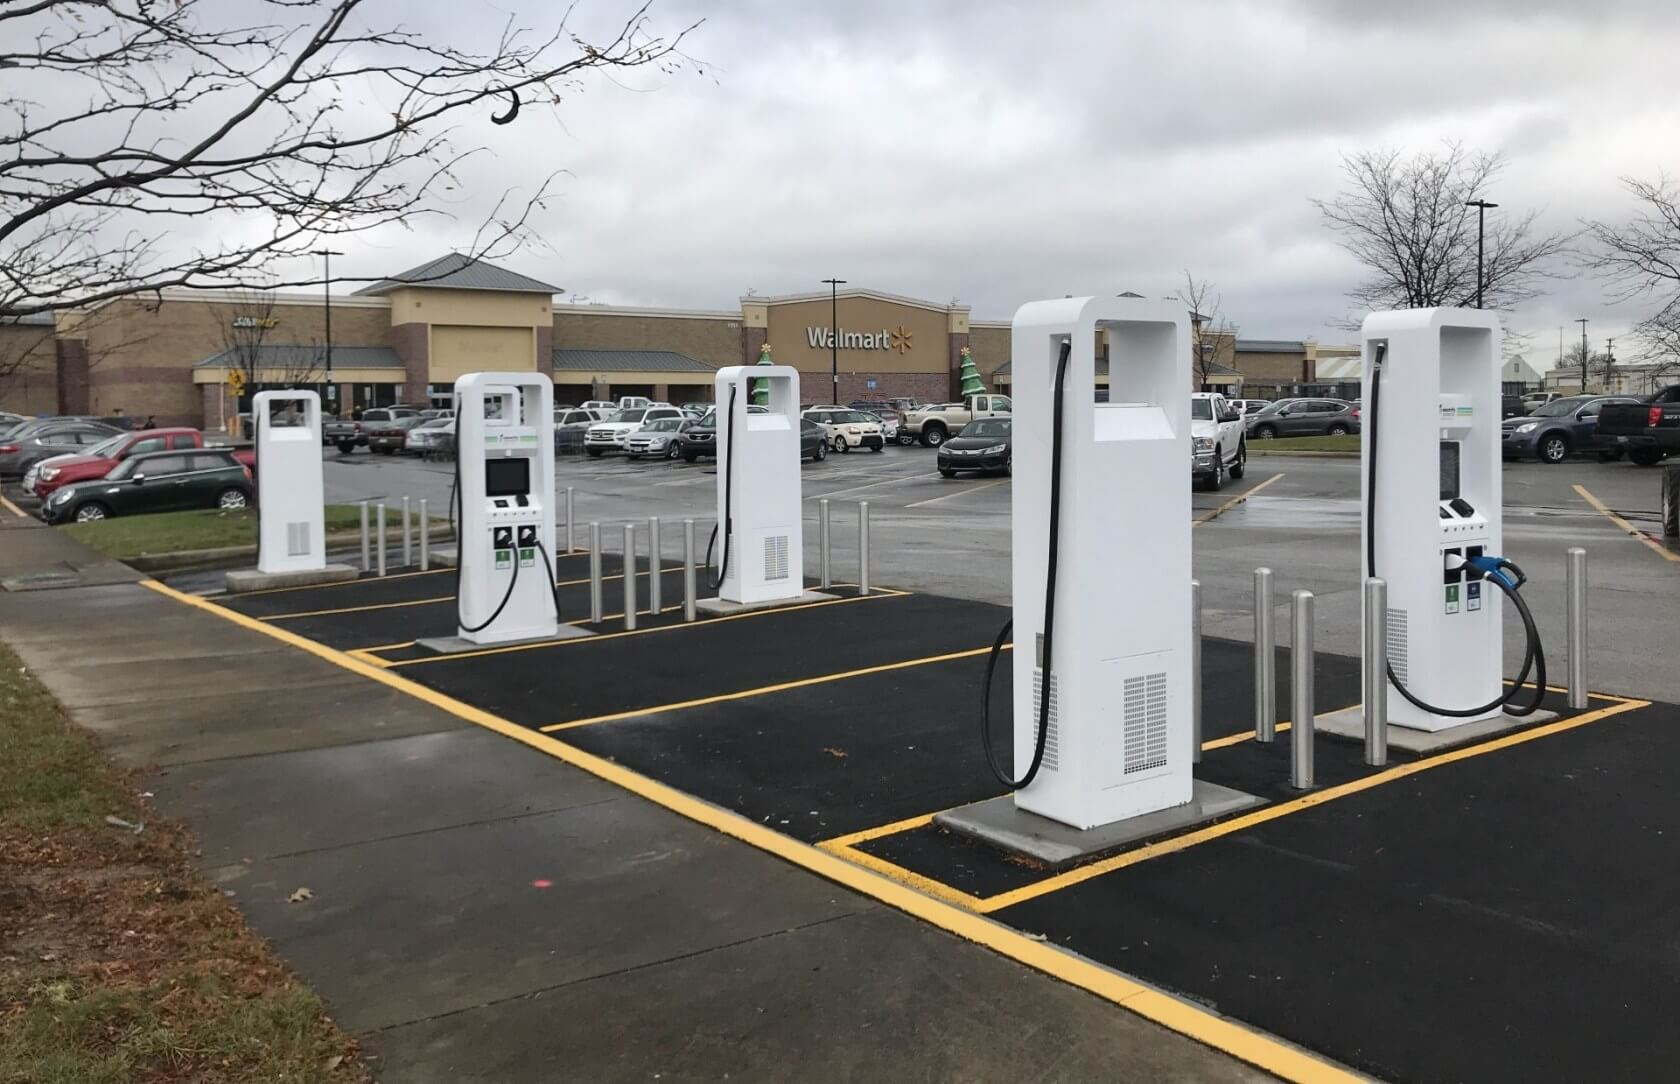 Electrify America Has Deployed Ev Charging Stations Across 120 Walmart Locations,How To Open A Locked Bedroom Door Without A Key